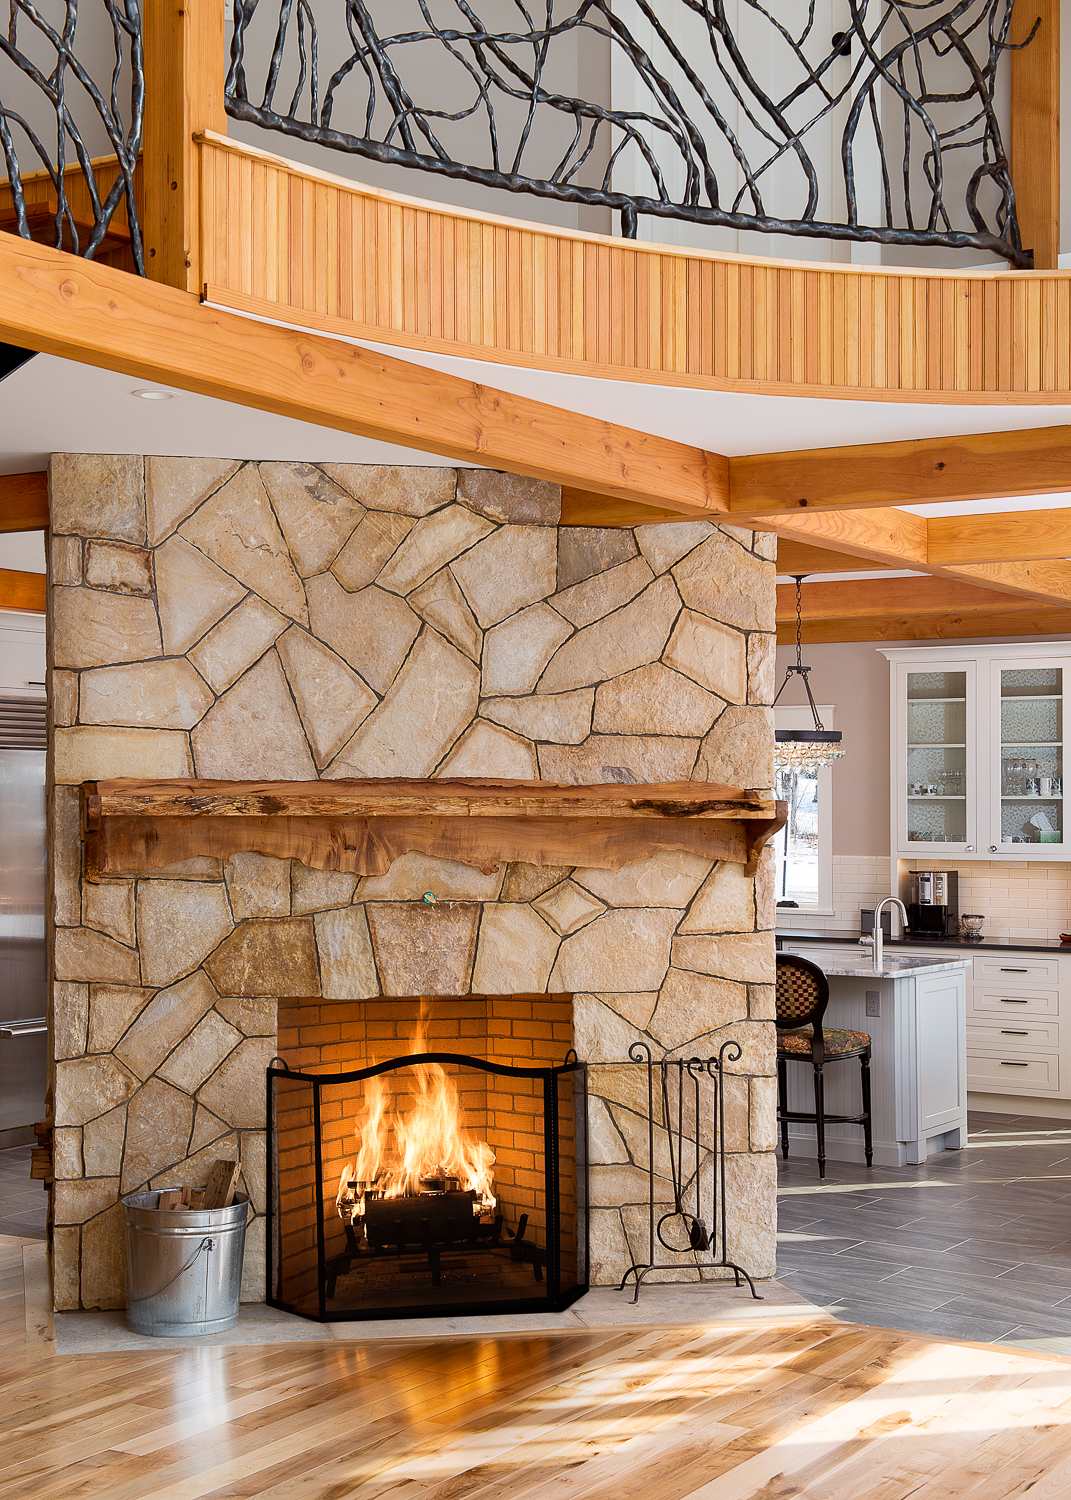 Fireplace separating the living area from the kitchen.